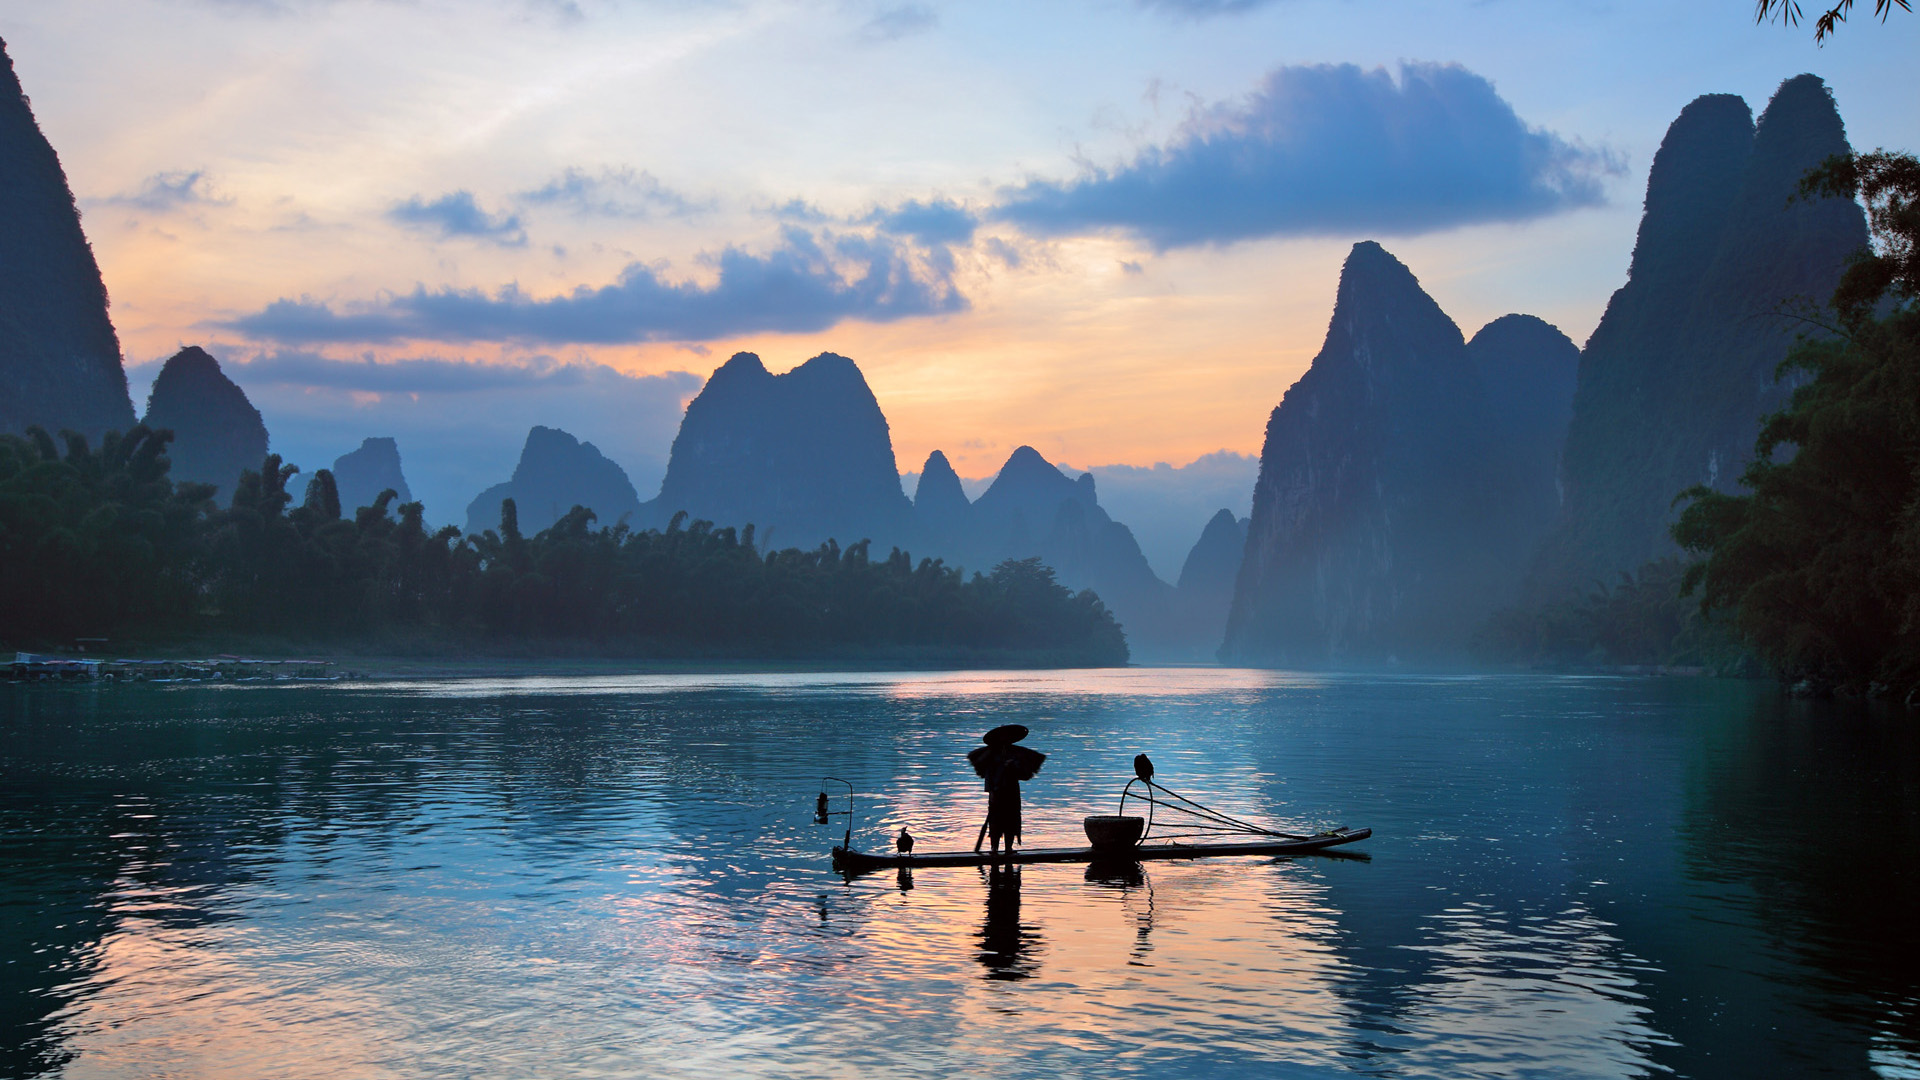 China Guilin Scenery wallpaper 1920x1080